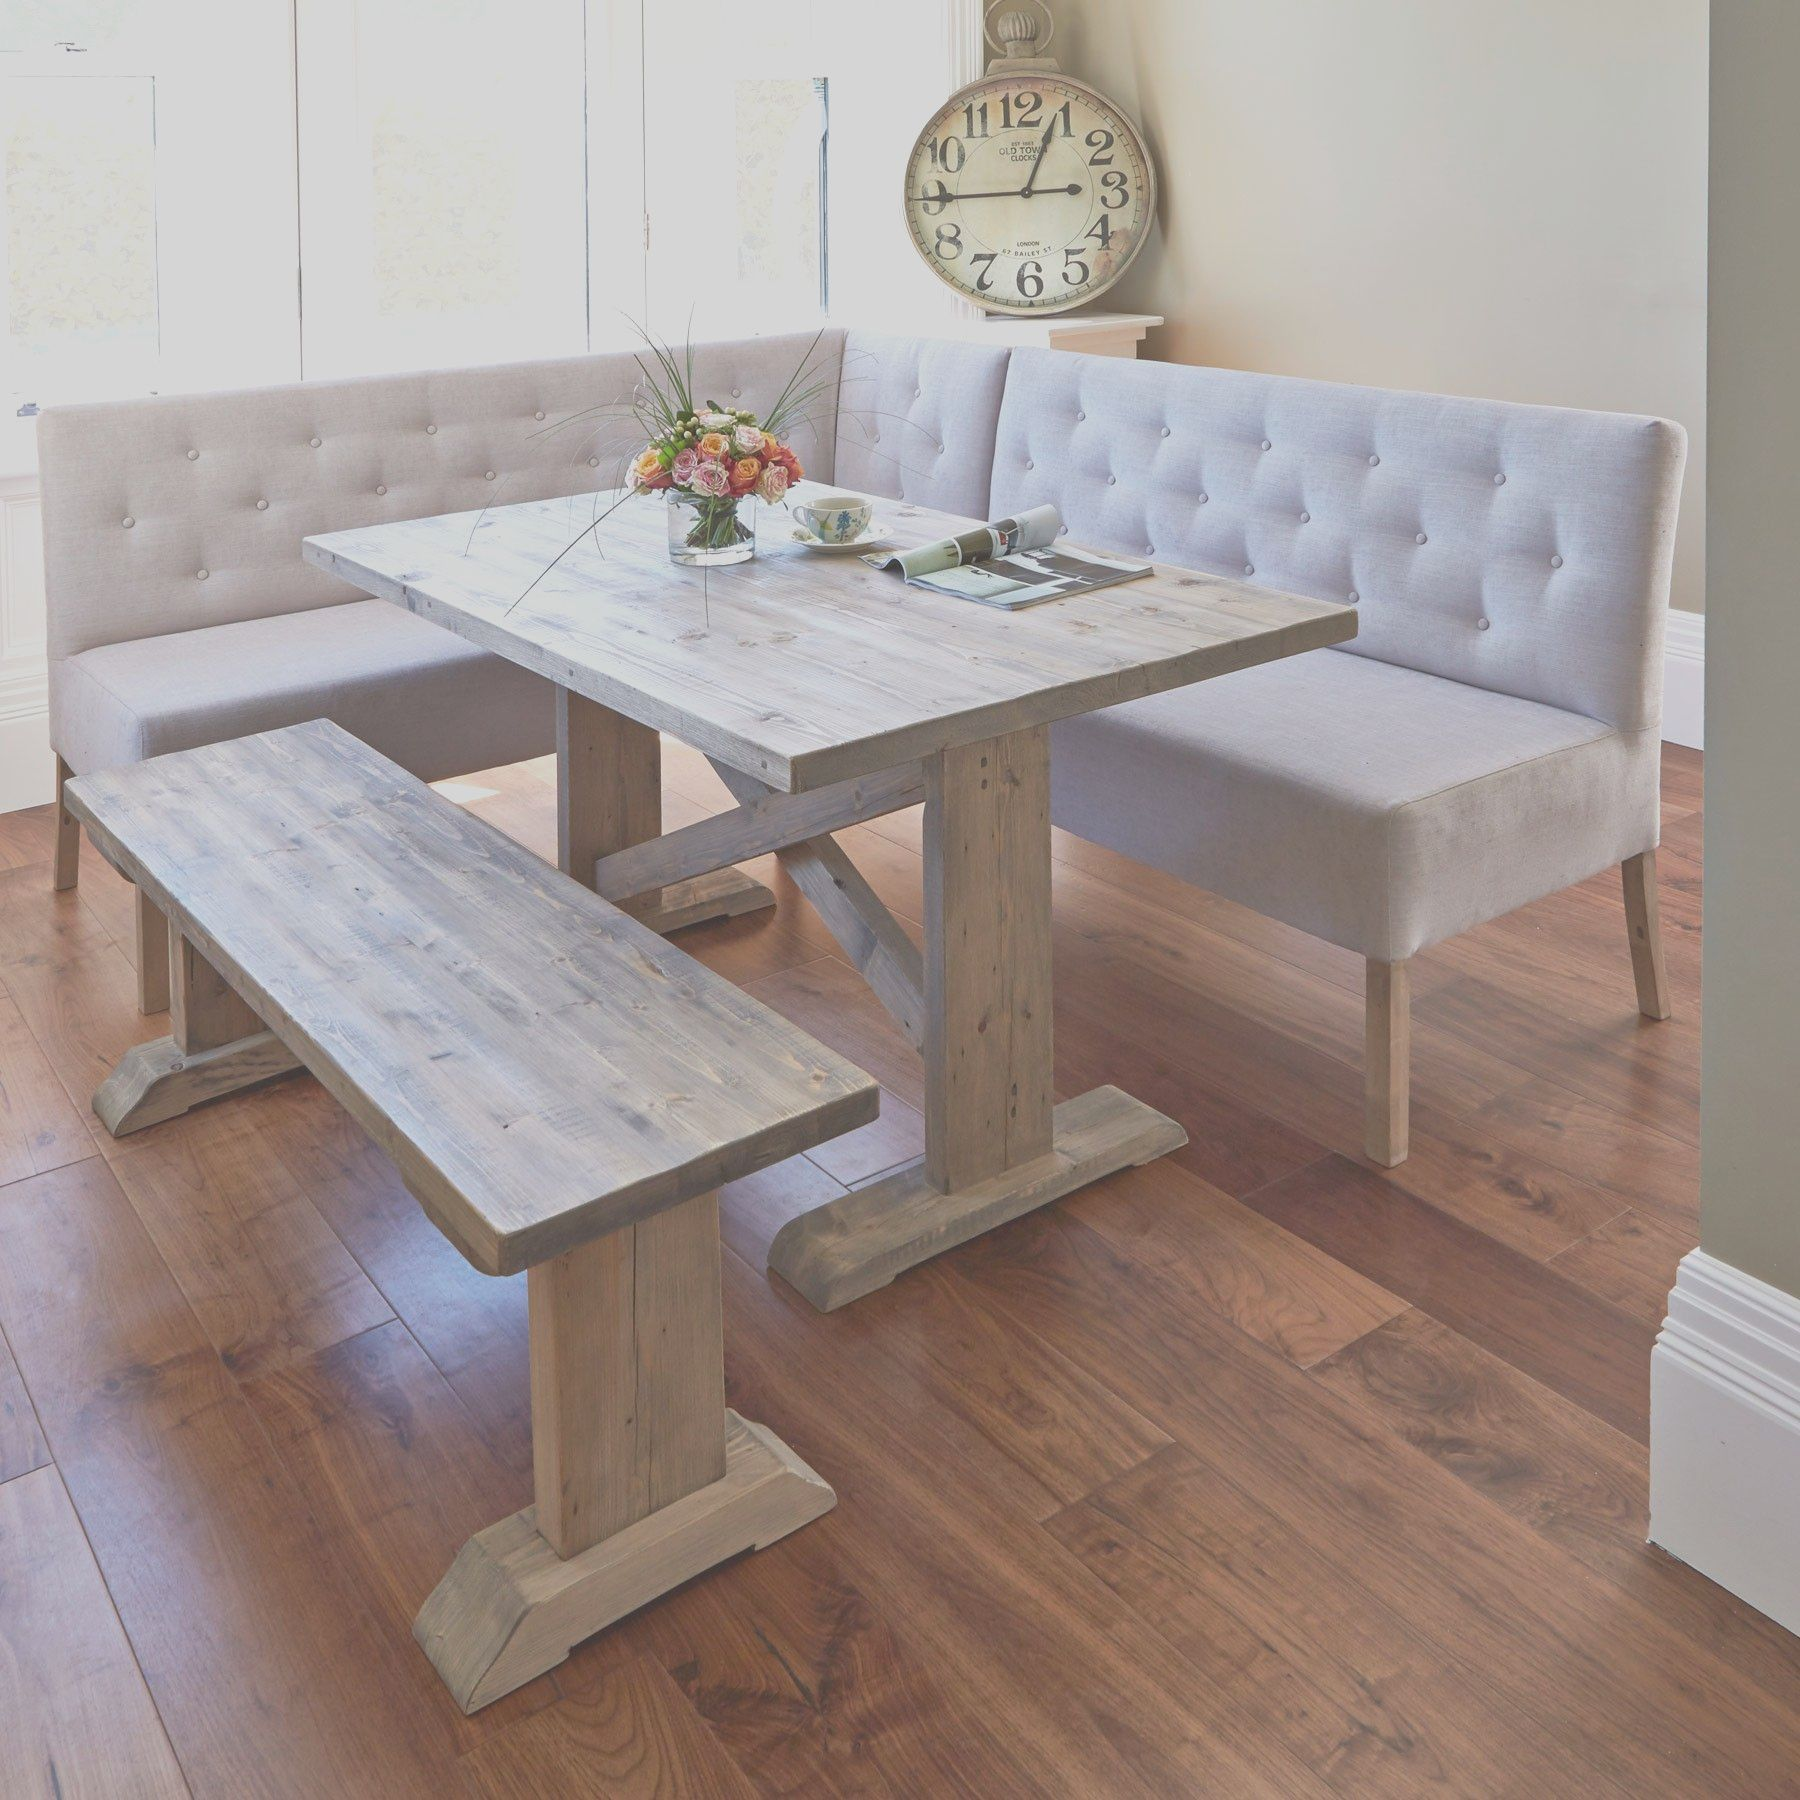 1099 Sale Alina 150cm Dining Table With Corner And In 2020 Corner Dining Table Dining Room Small Dining Table With Bench